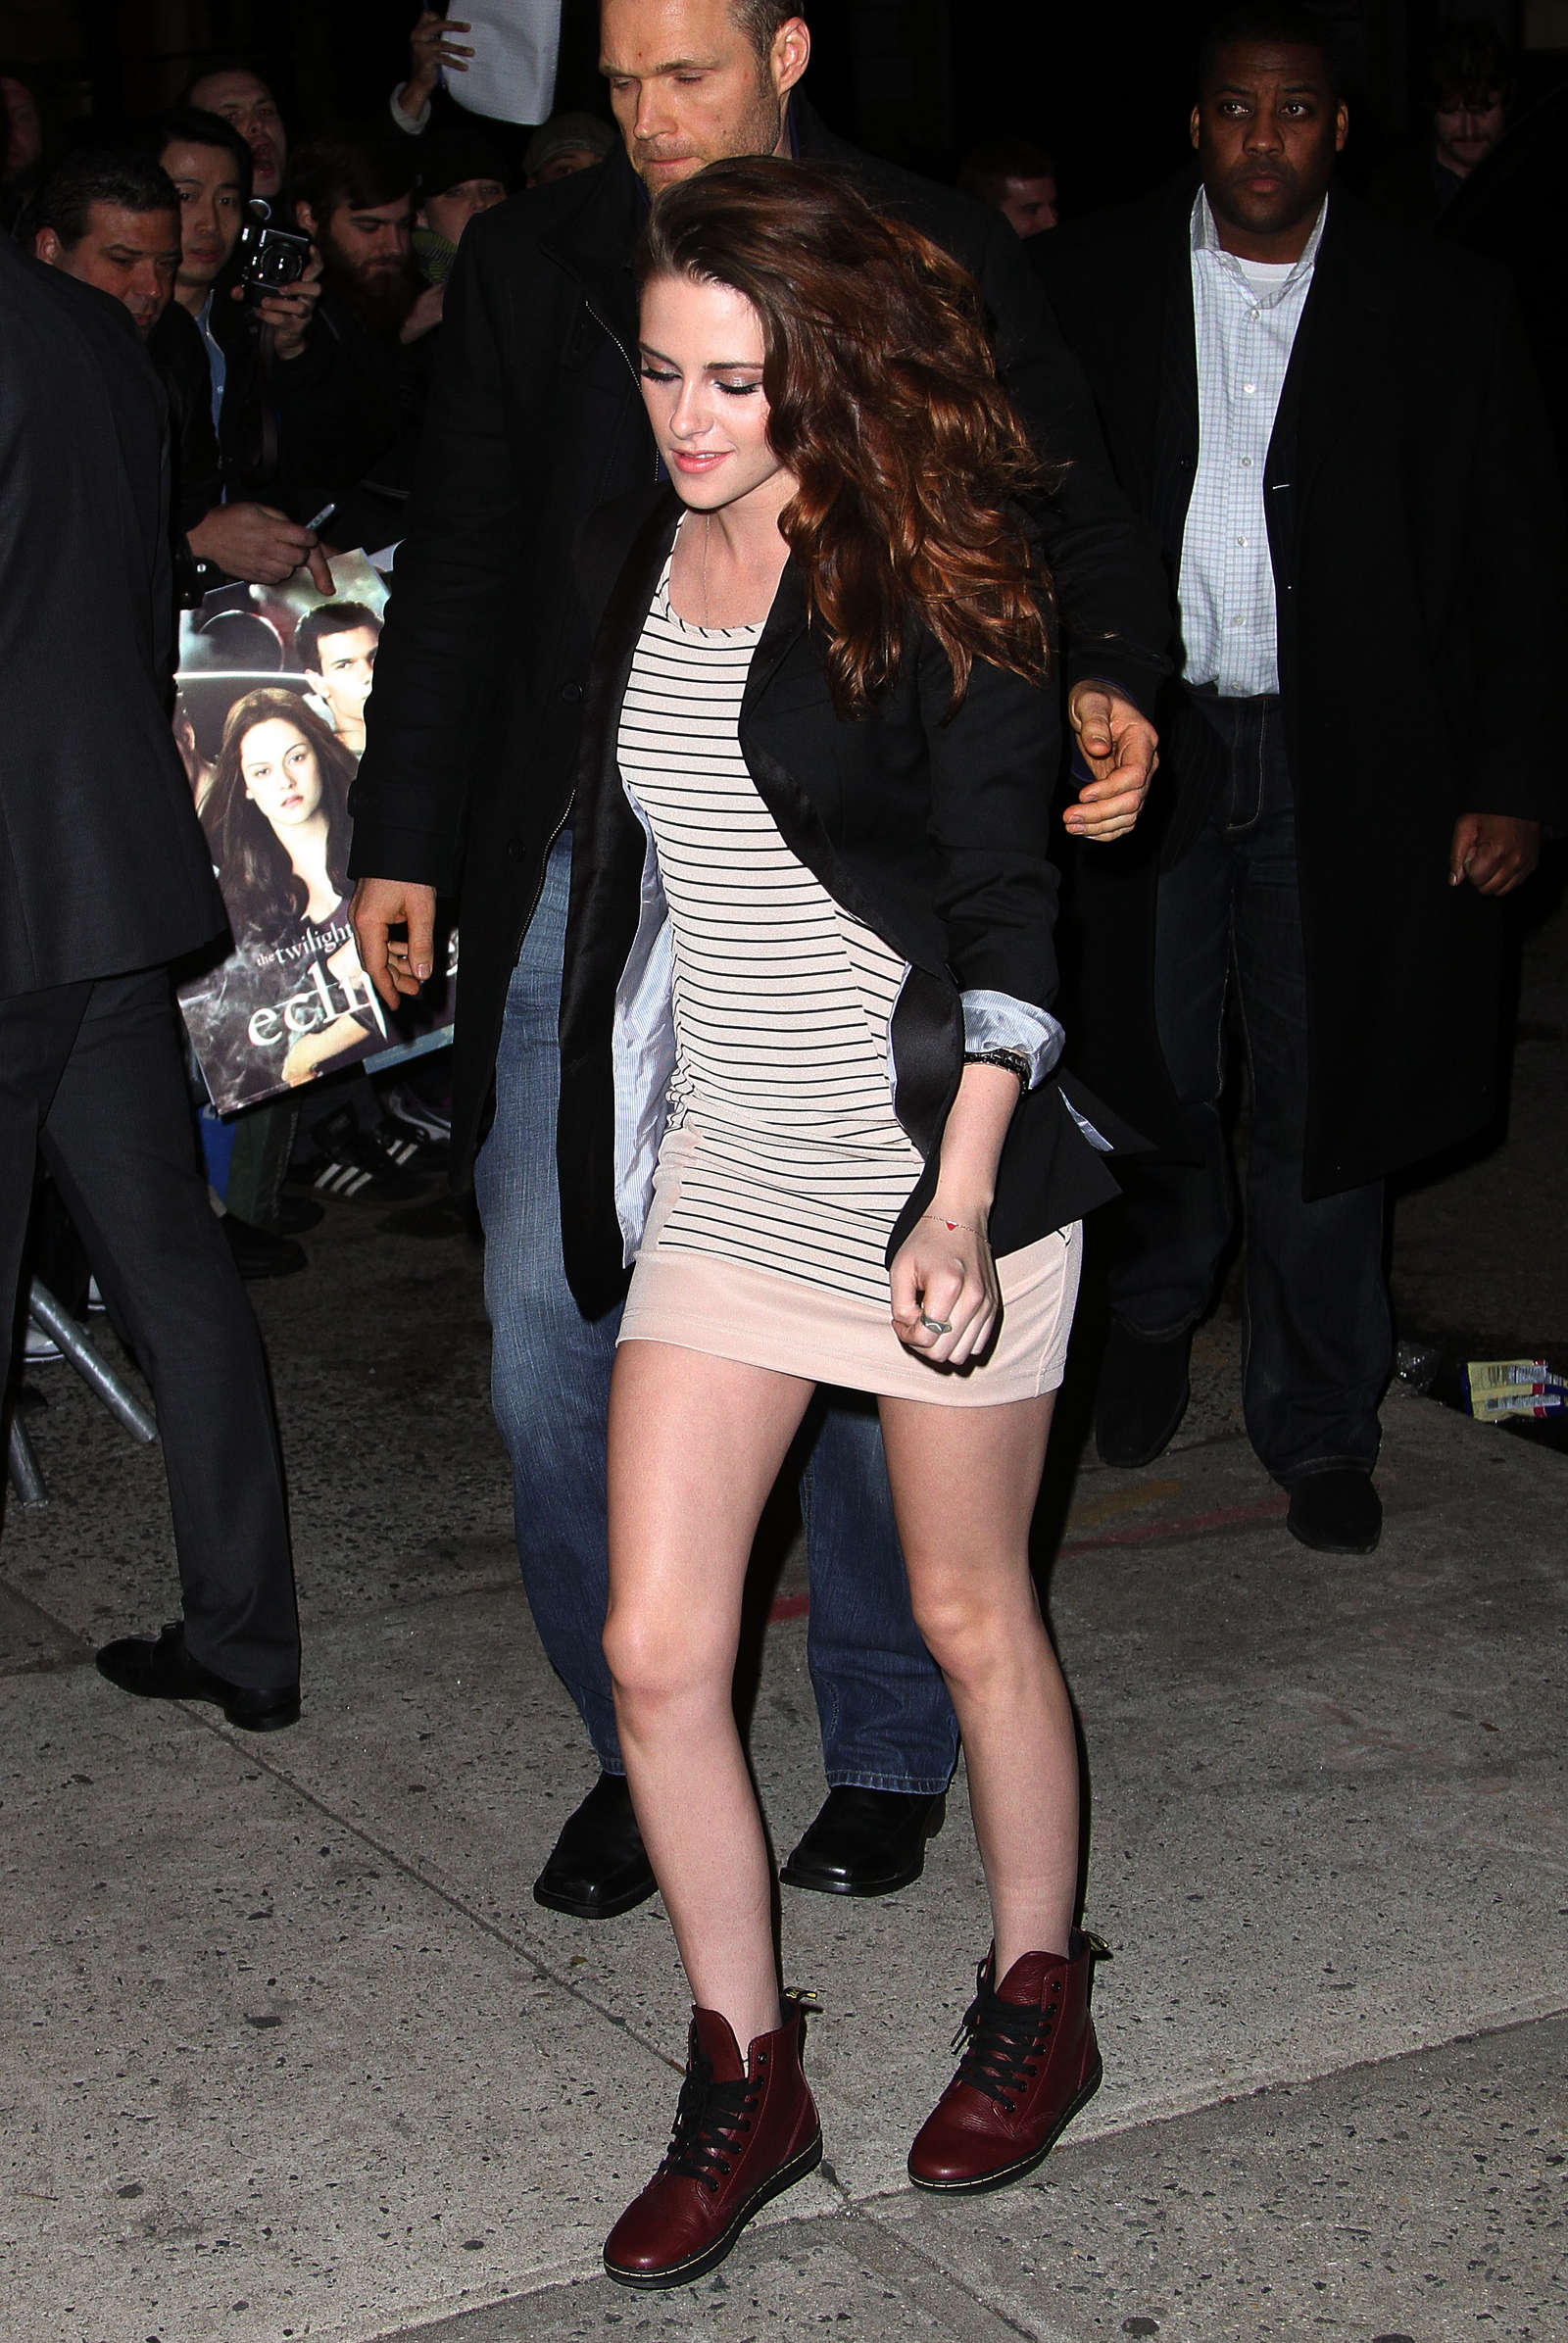 Kristen Stewart leggy in short dress -02 - GotCeleb